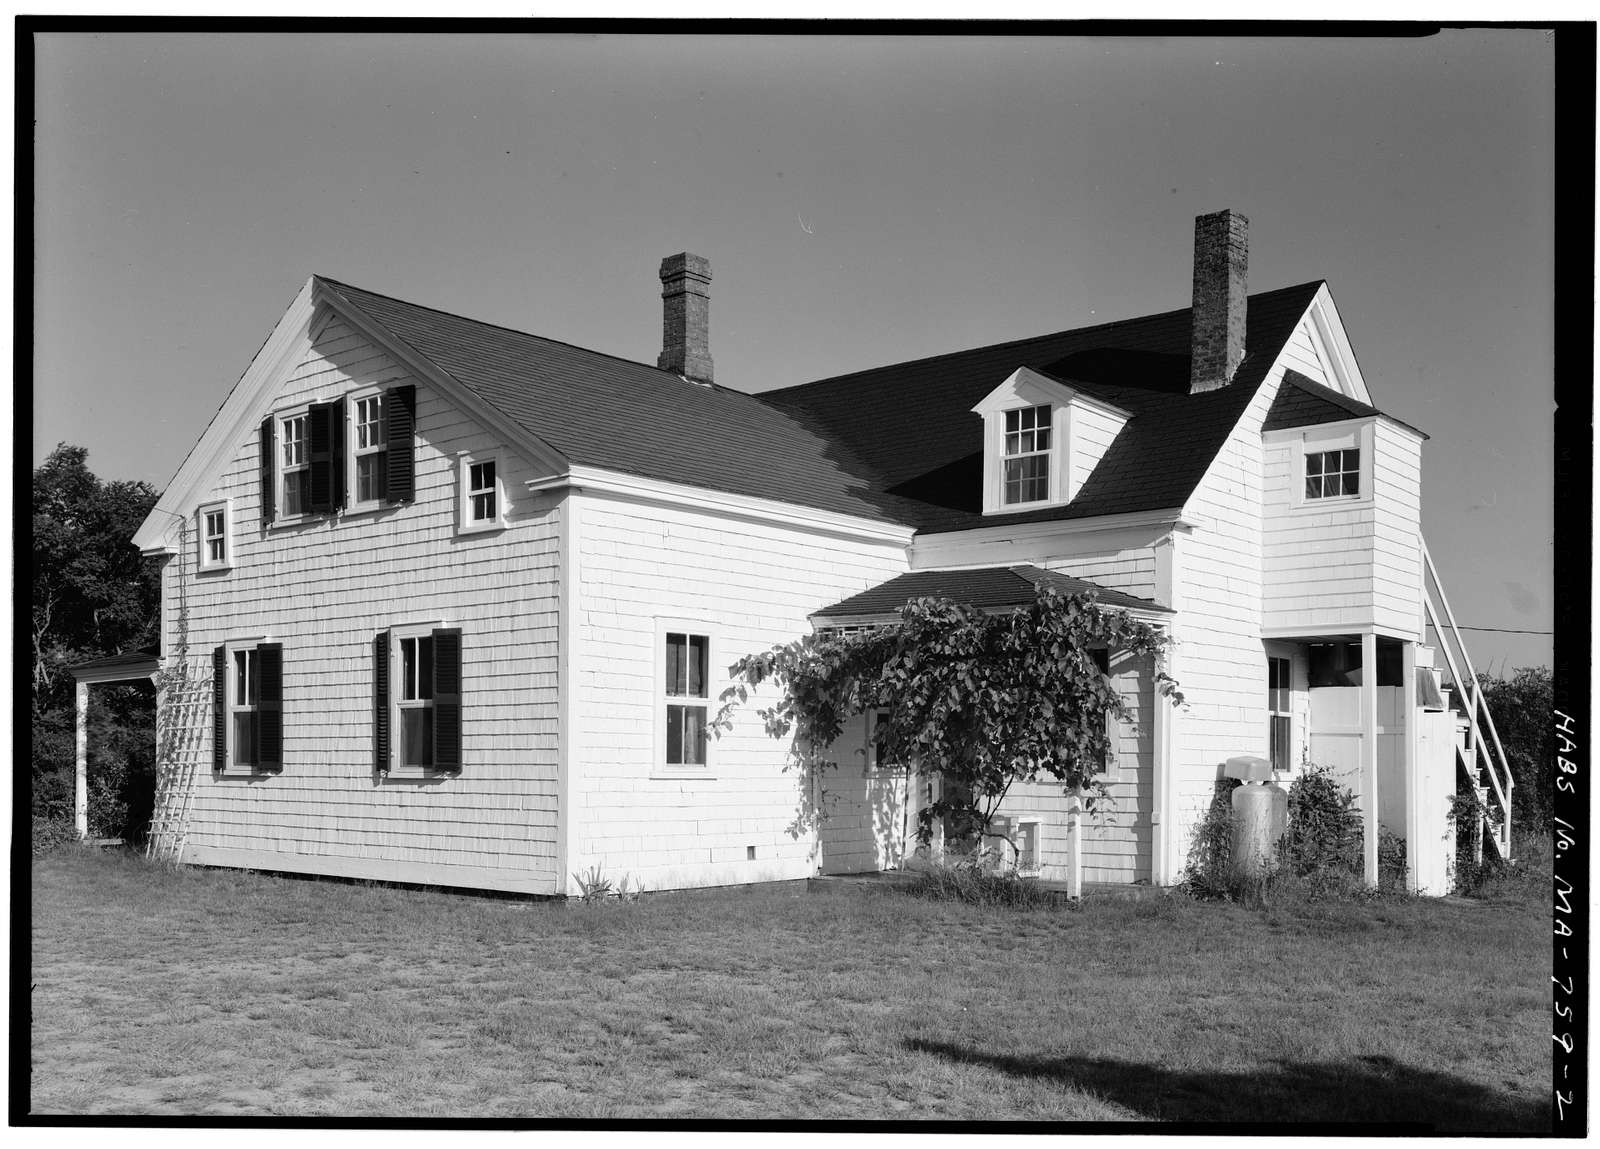 Isaac Rich House, South Pamet Road, Truro, Barnstable County, MA